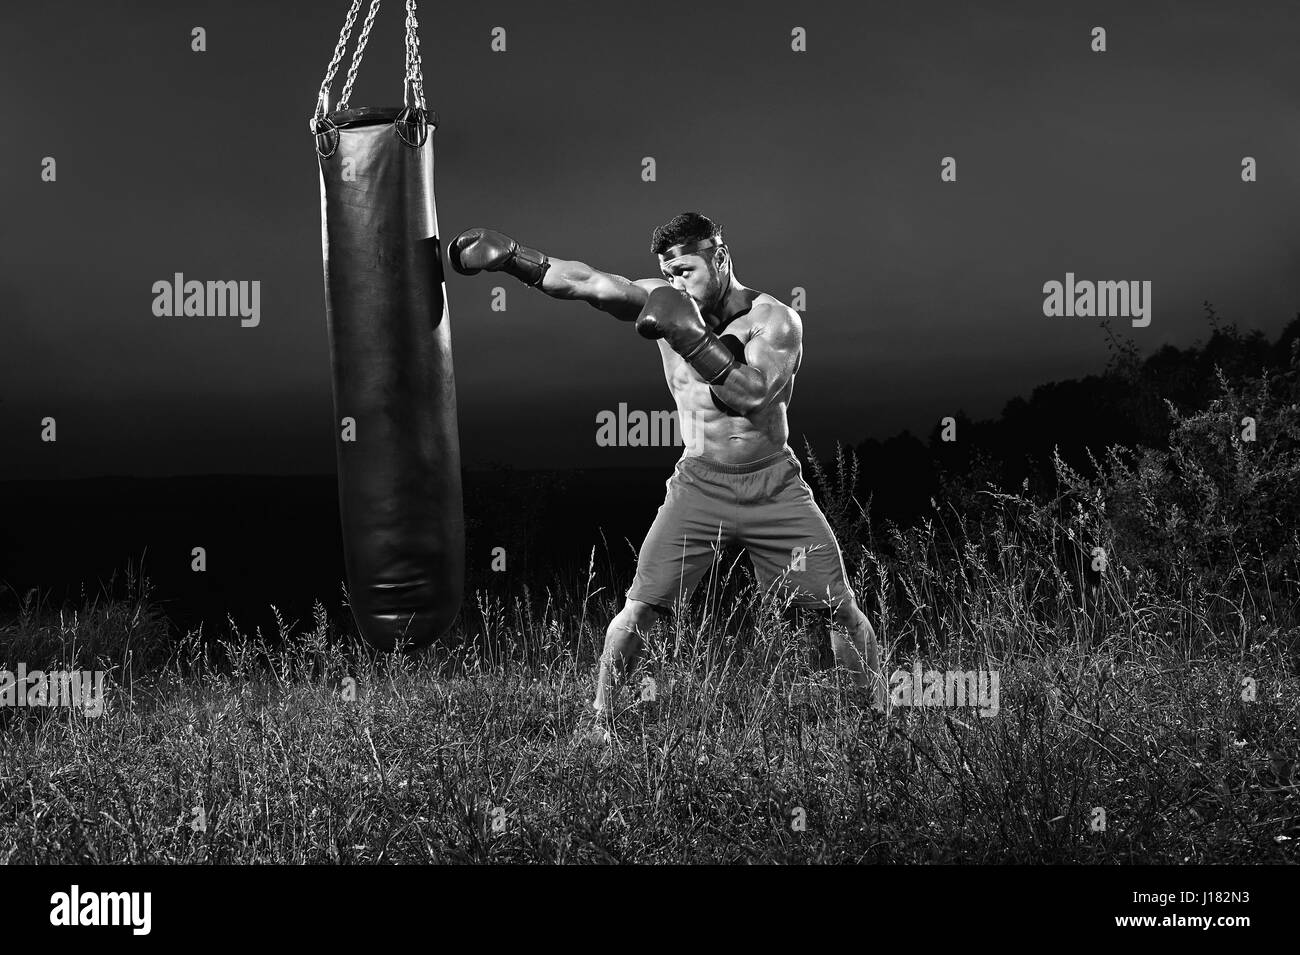 Monochrome shots of a male boxer training with a punching bag ou - Stock Image